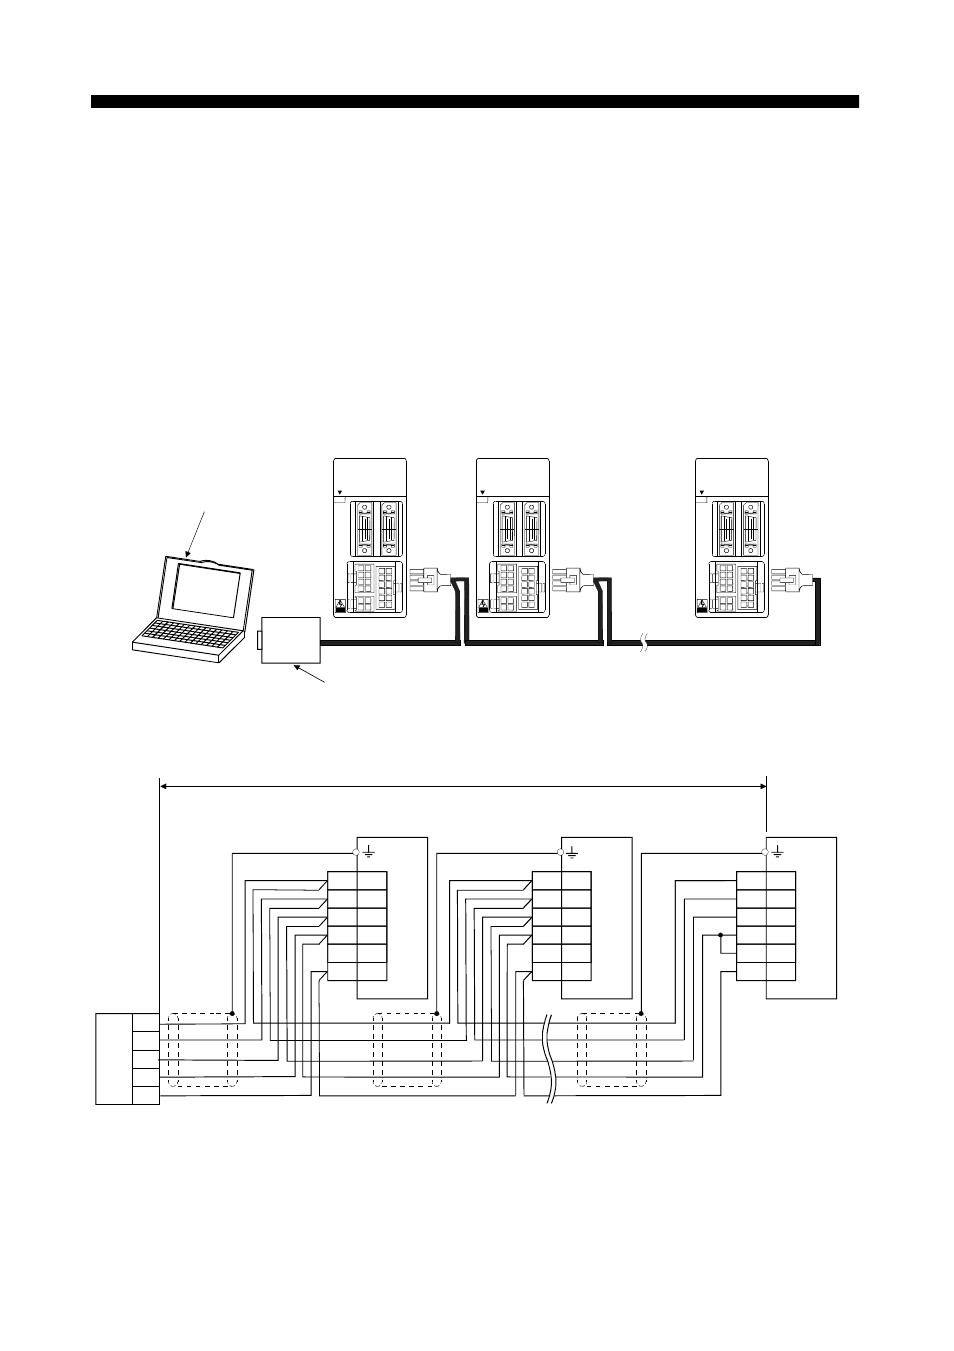 Communication Functions 1 Configuration Rs 422 Rs422 Wiring Diagram Mitsubishi Electric J2 Jrseries Mr 03a5 User Manual Page 157 185